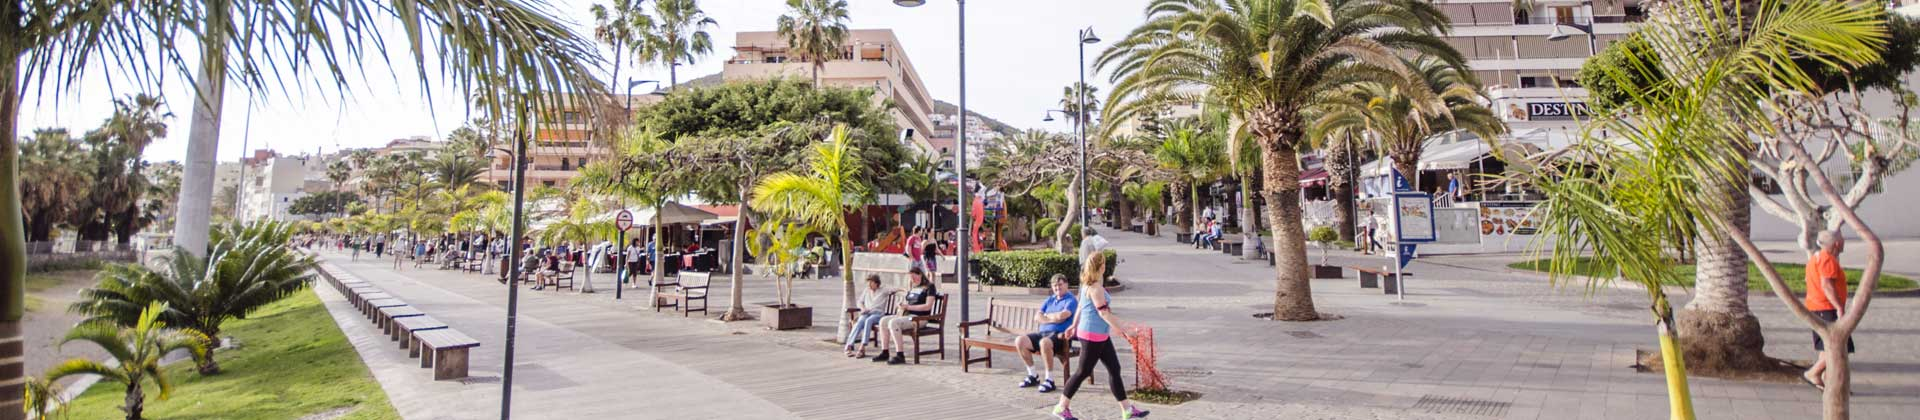 https://www.goodmorningtenerife.com/wp-content/uploads/2014/08/05_slide_landscape_GM_Tenerife.jpg